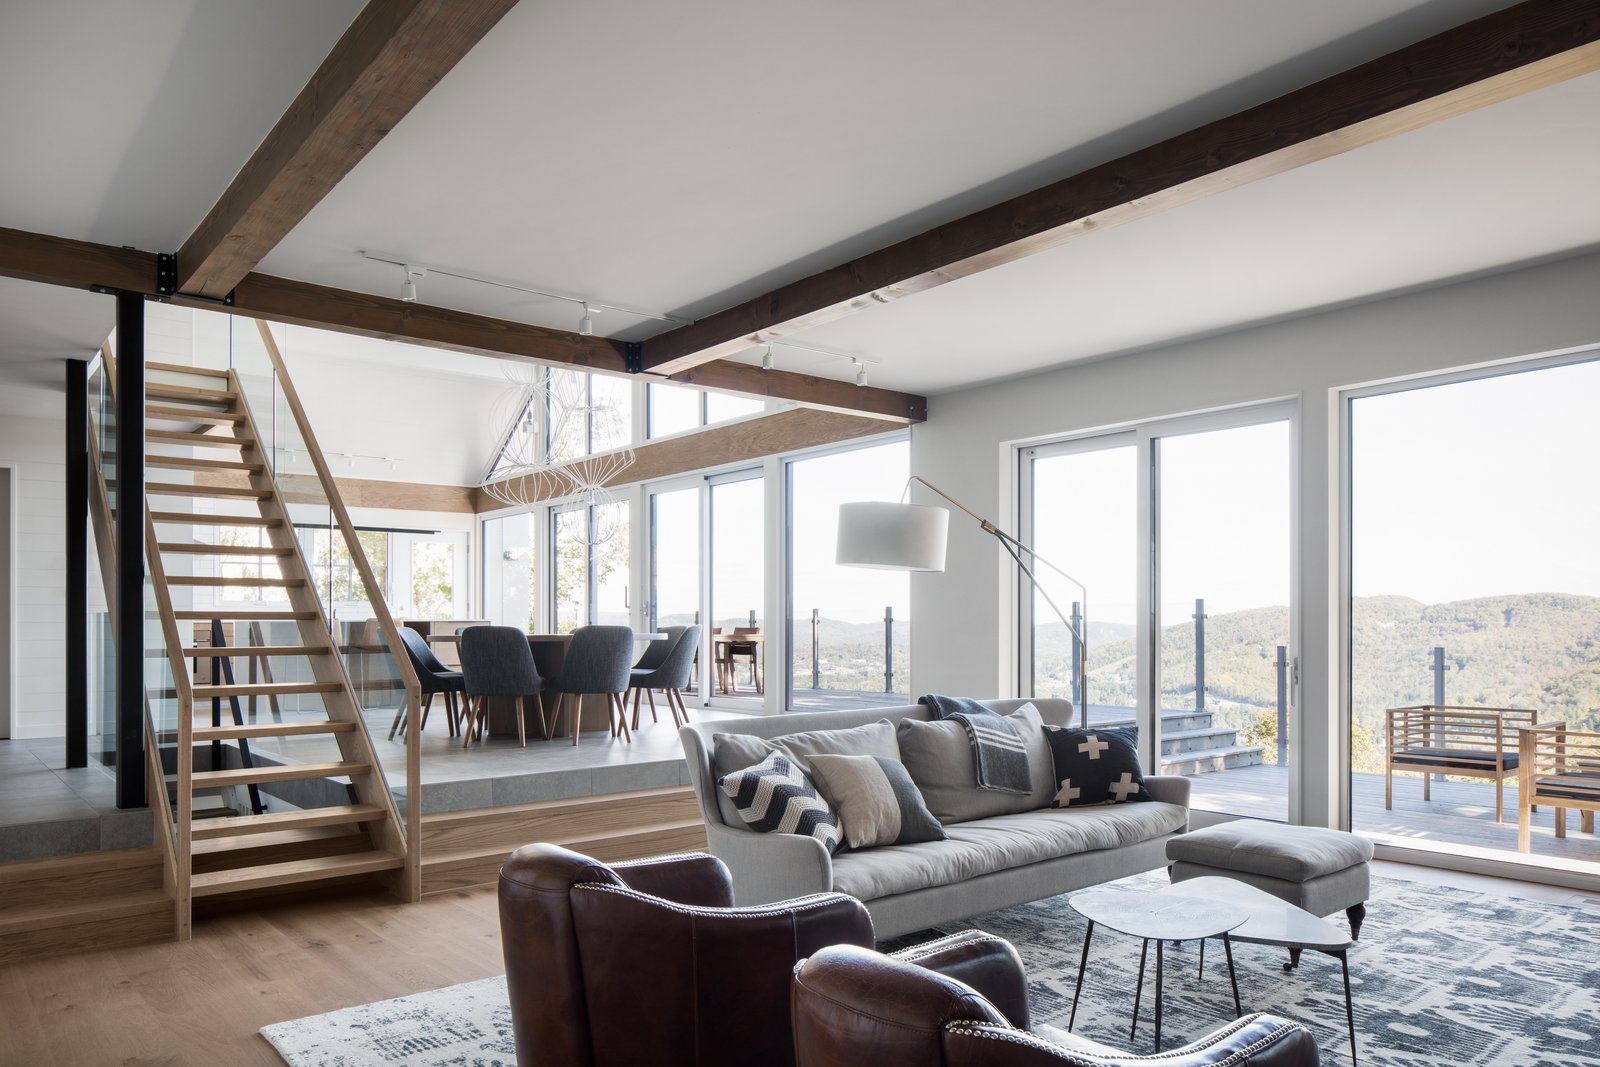 A 1960s Canadian Ski House Is Rebuilt Into a Gorgeous Abode